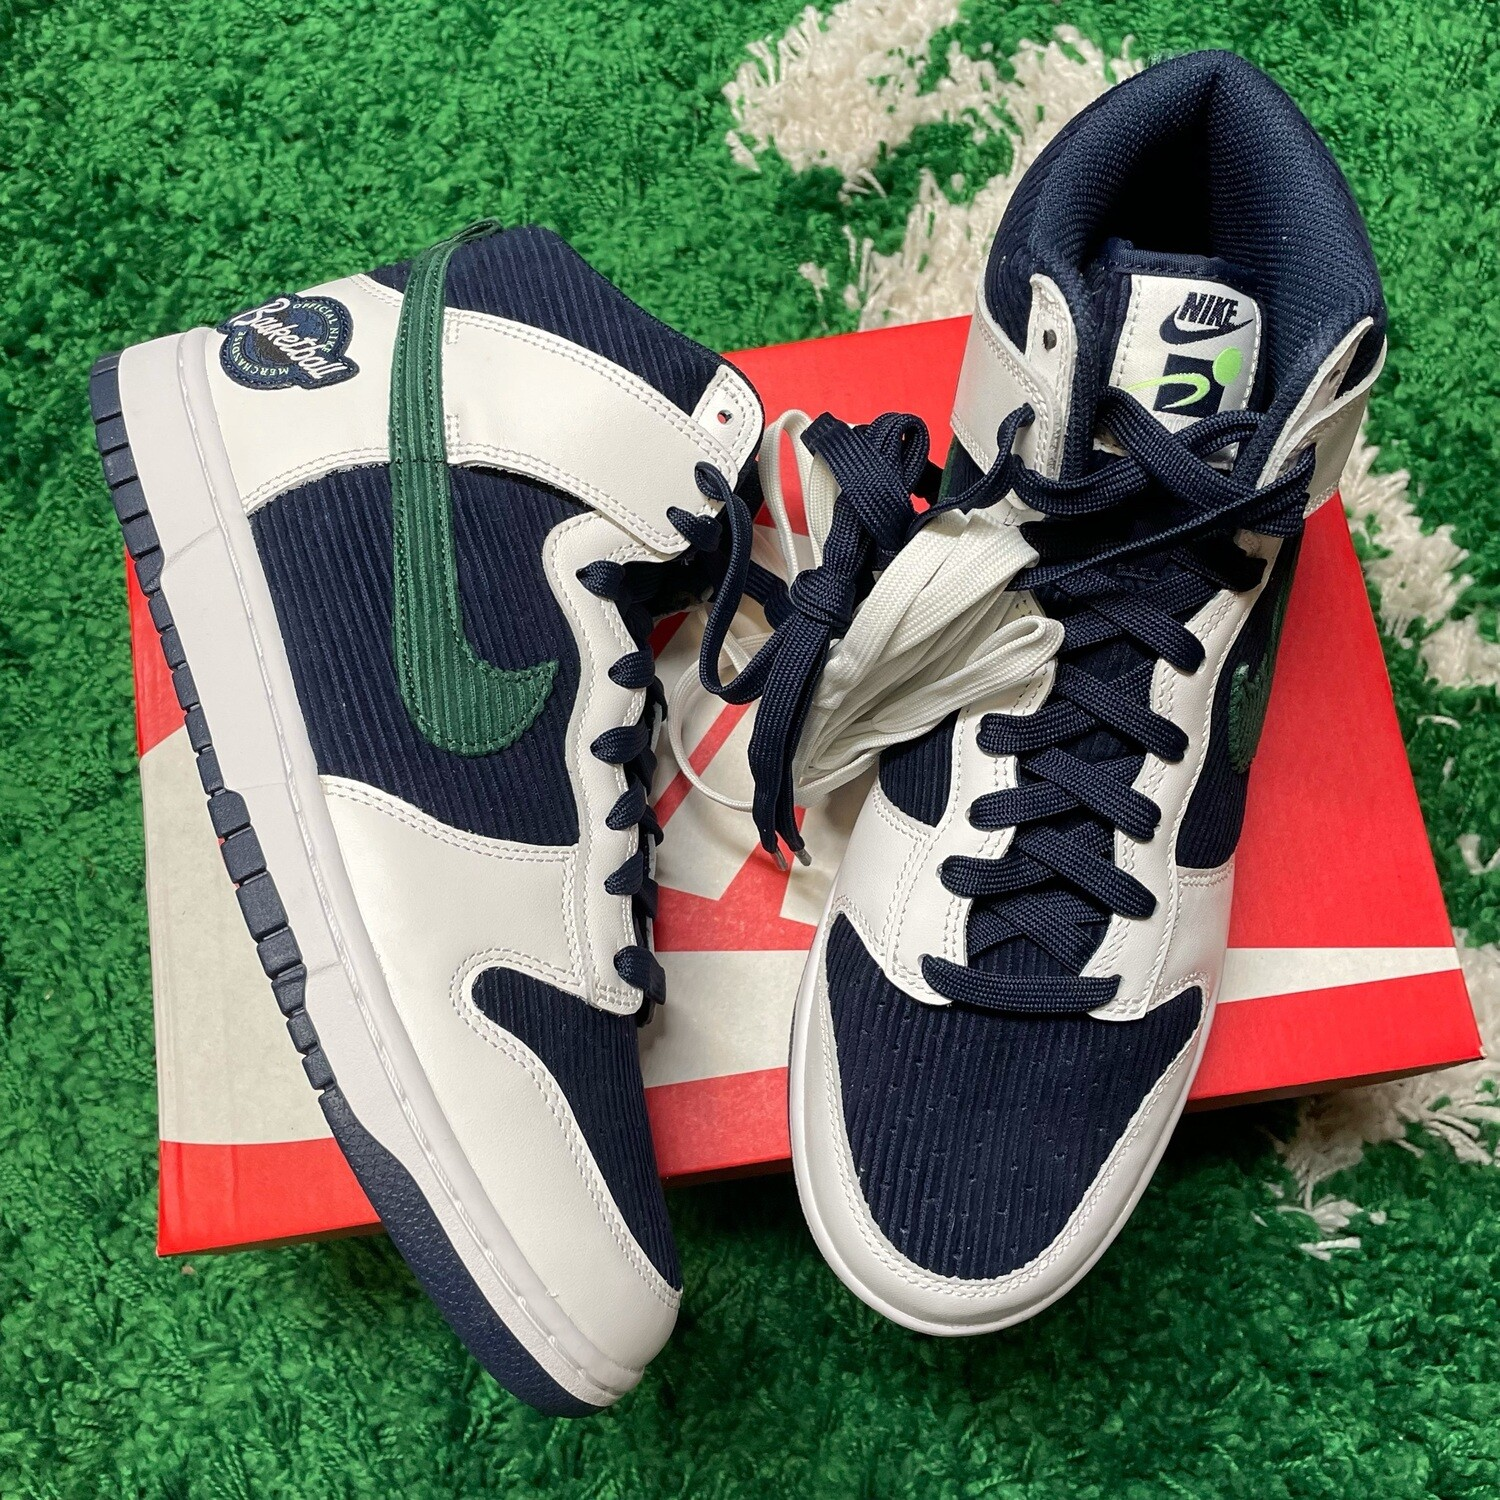 Nike Dunk High Sports Specialties White Navy Size 11